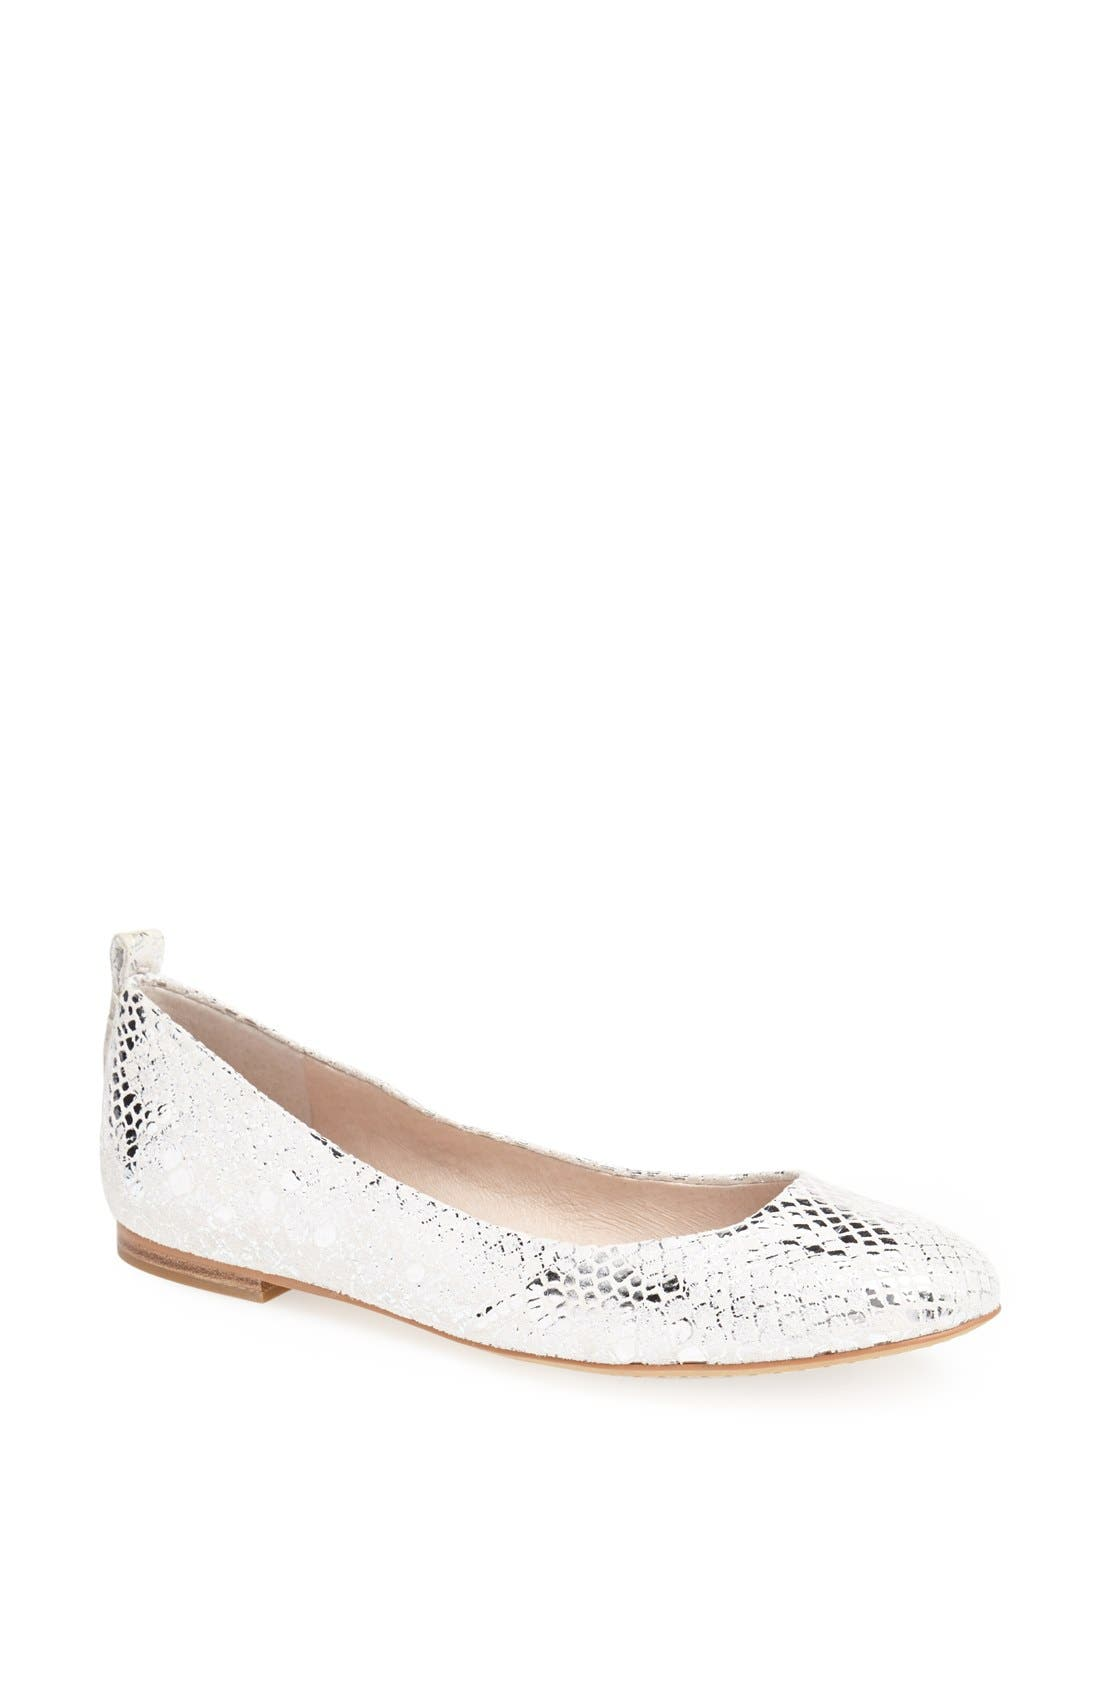 Main Image - Vince Camuto 'Benningly' Snake Embossed Metallic Leather Ballet Flat